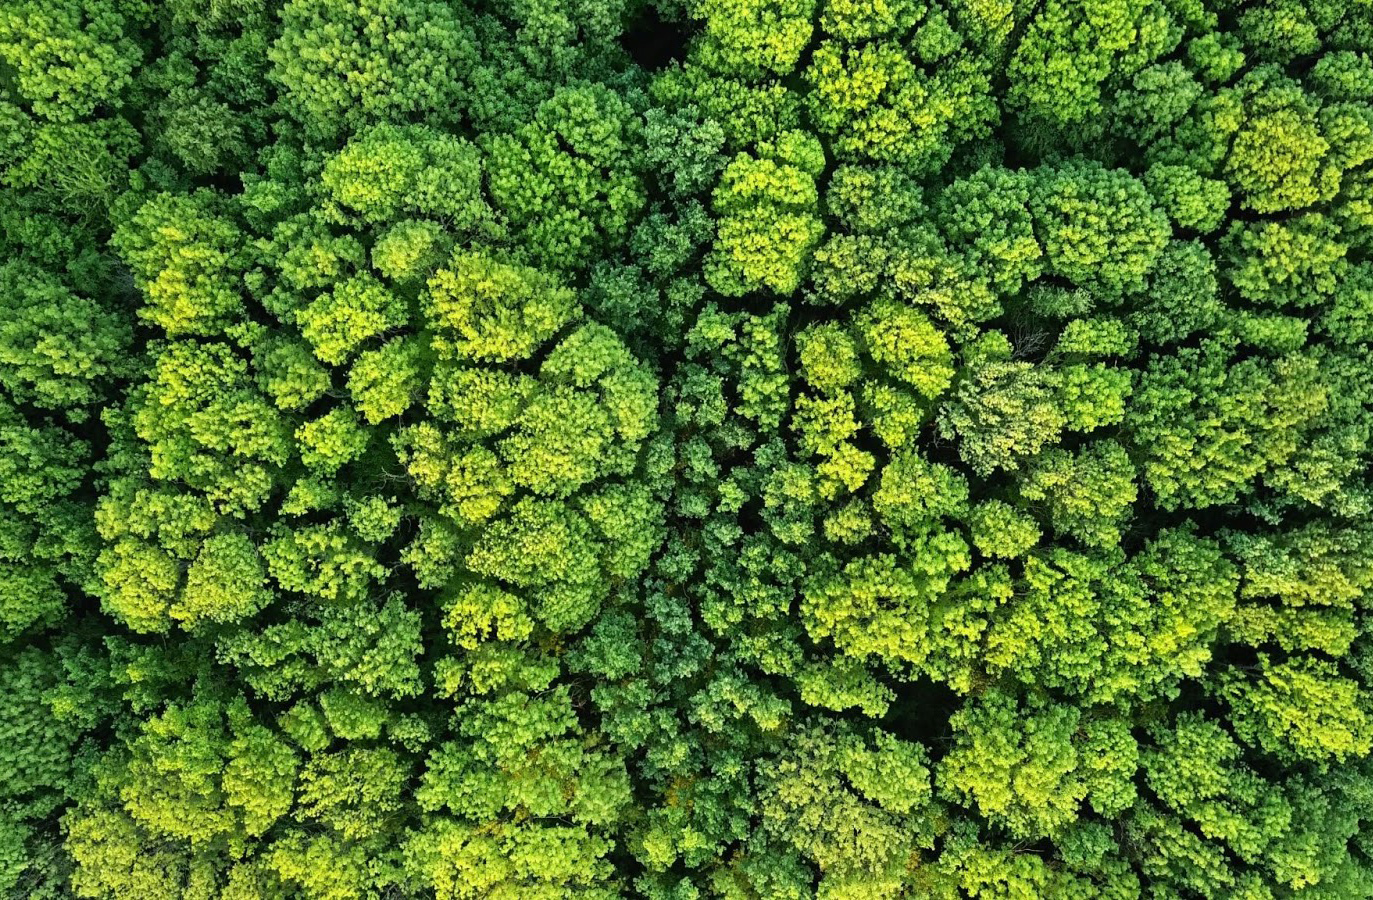 An aerial view of a lush green forest reminds us of the importance of protecting air quality this Earth Day